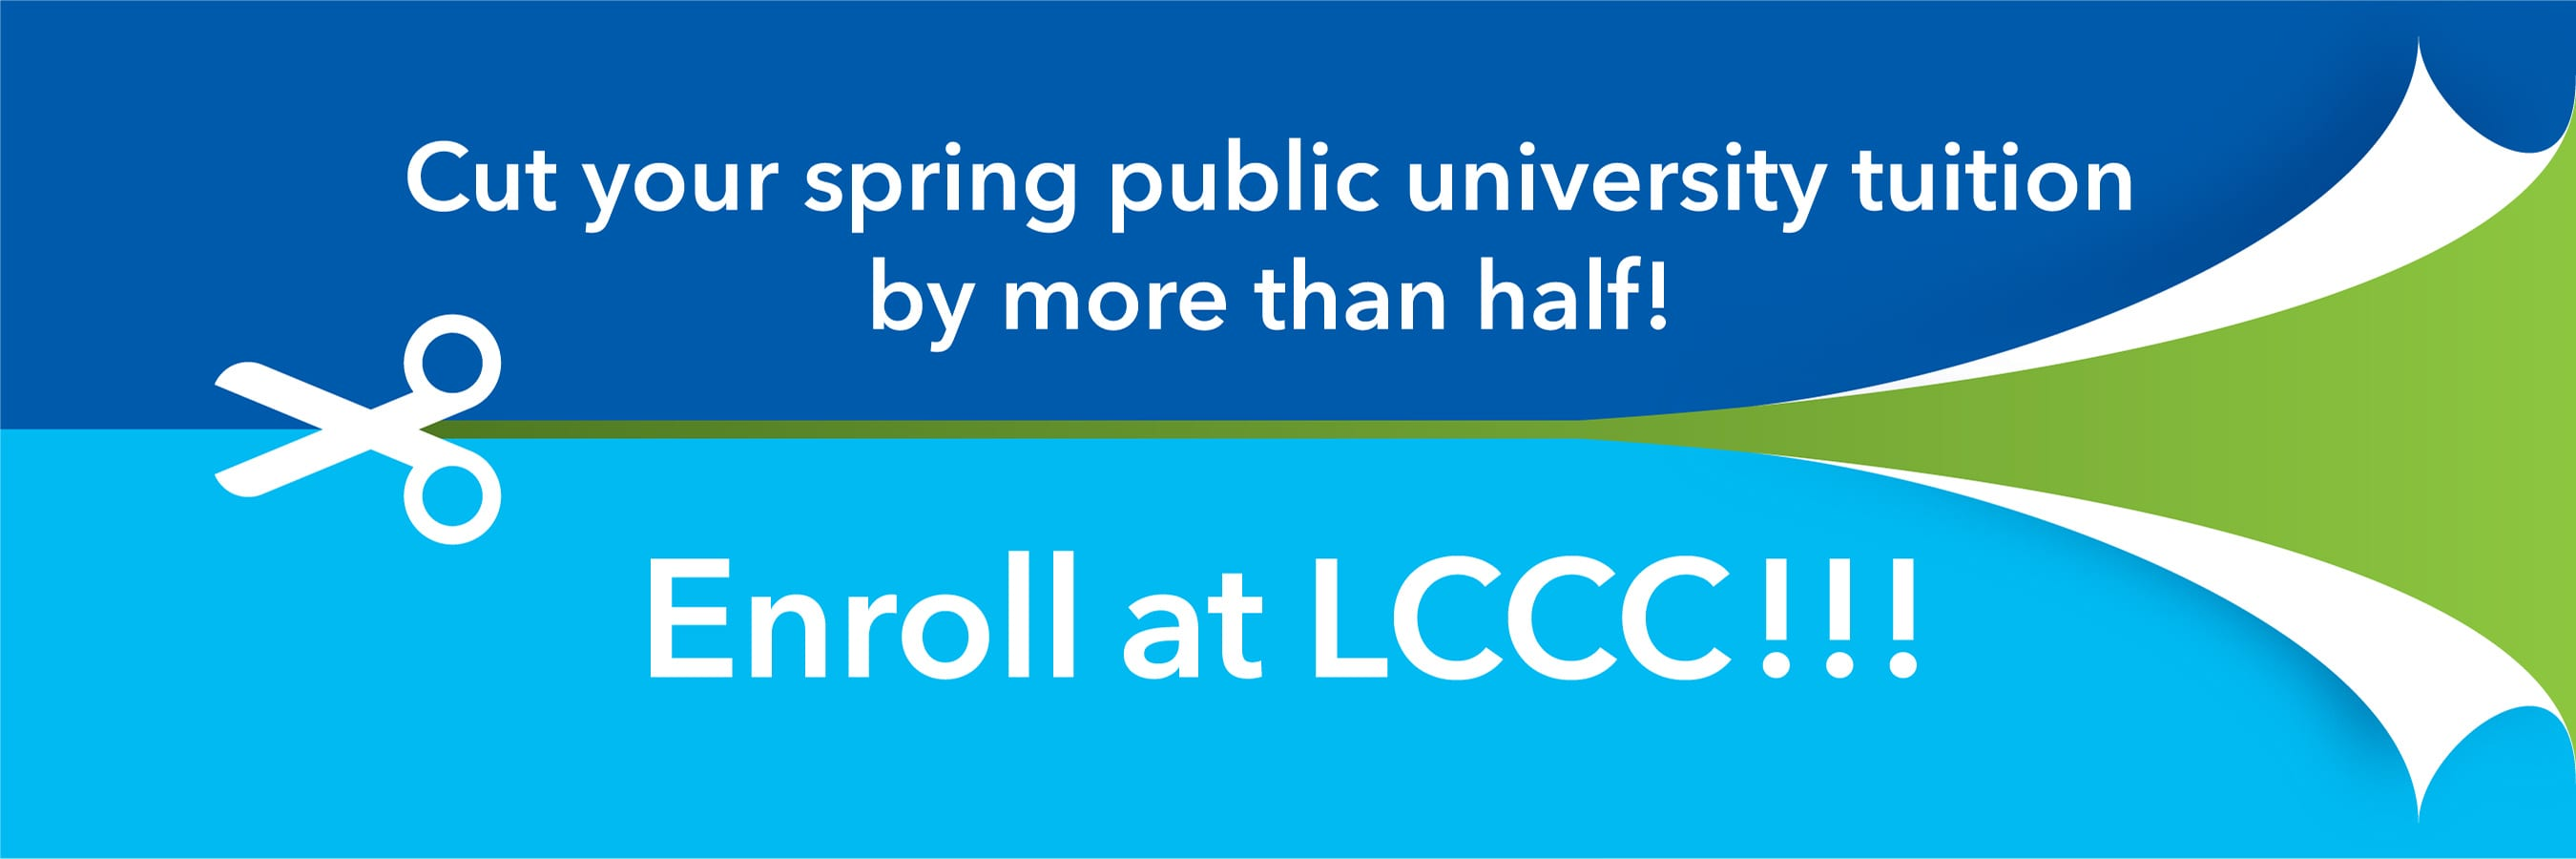 Cut your spring university tuition by more than half. Enroll at LCCC.